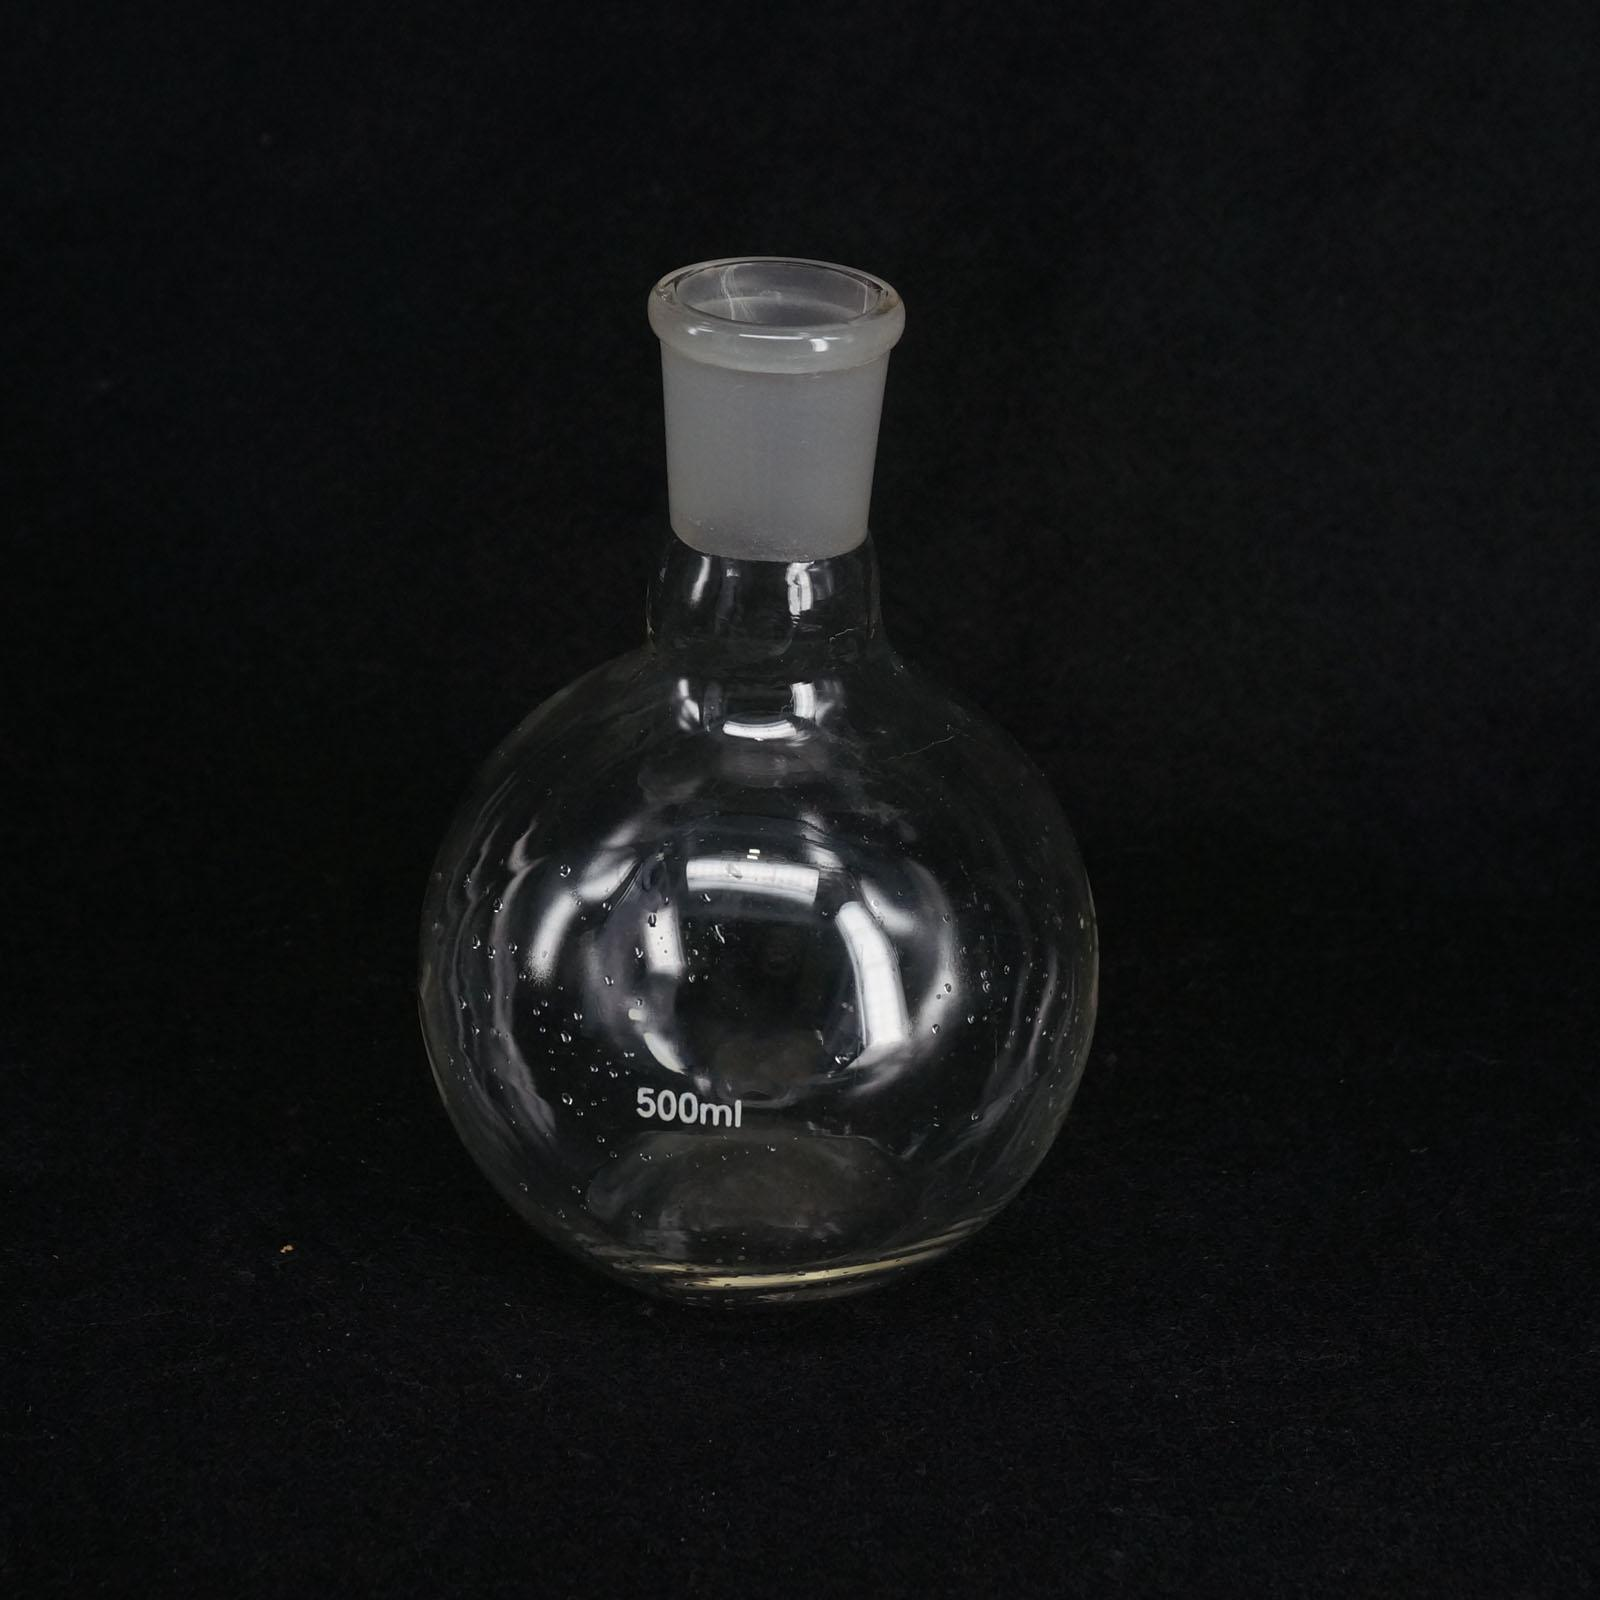 500ml 29/32 Joint One Mouth Short Neck Flat Bottom Flask Boiling Lab Glassware